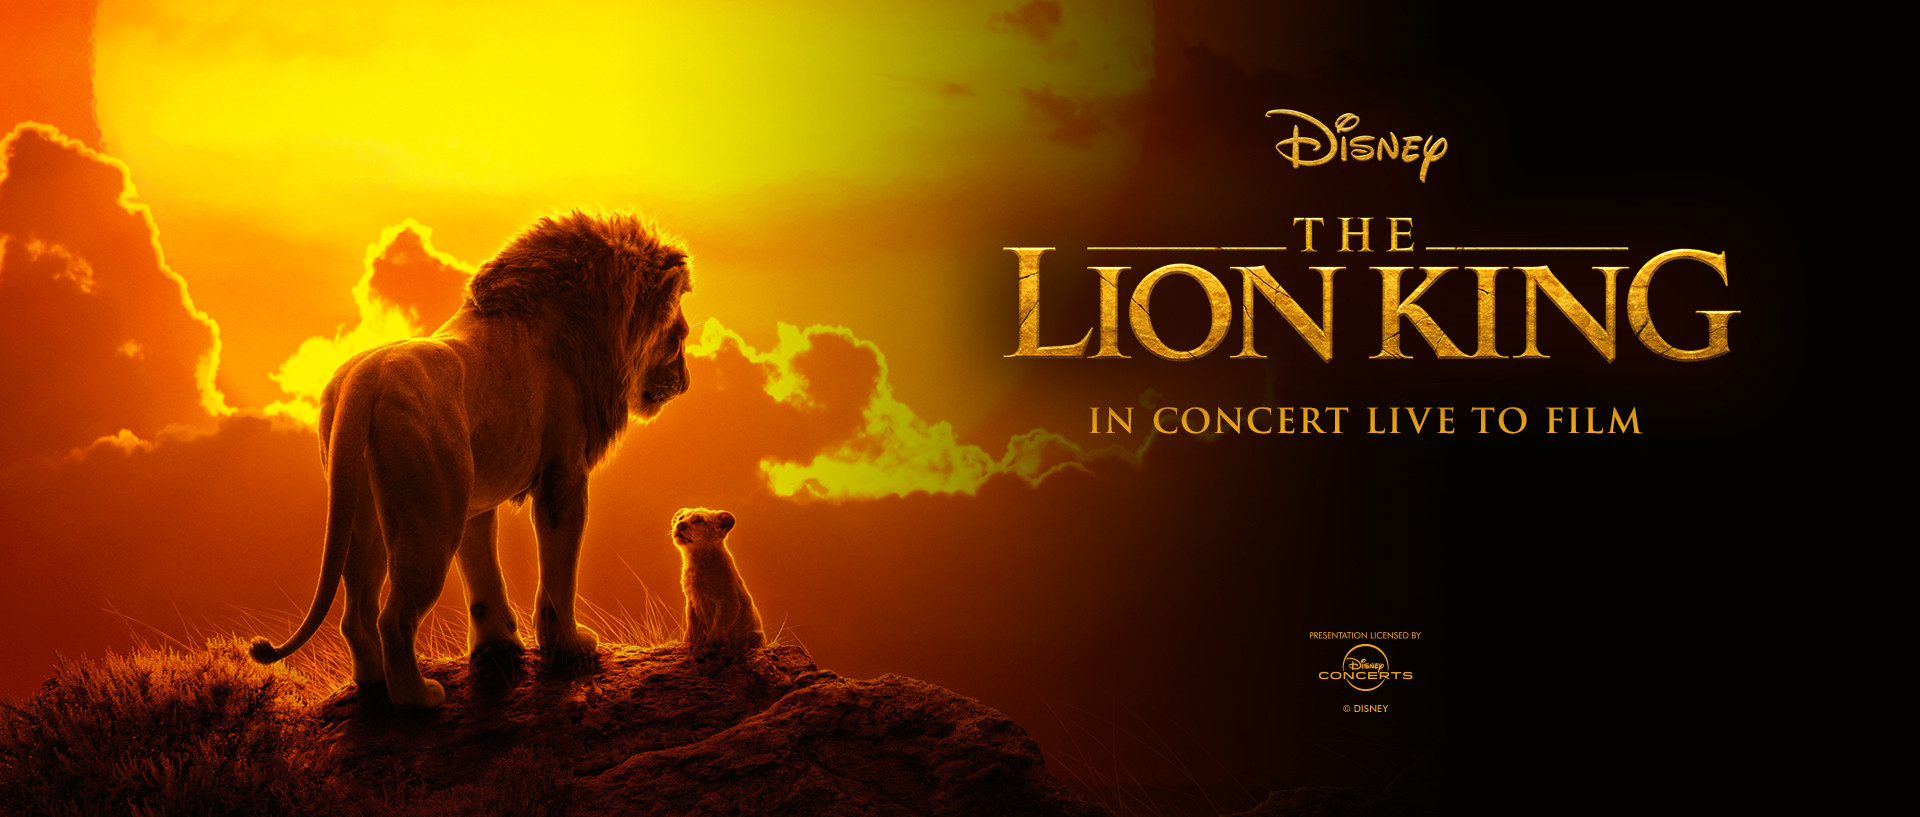 How long is lion king 2019